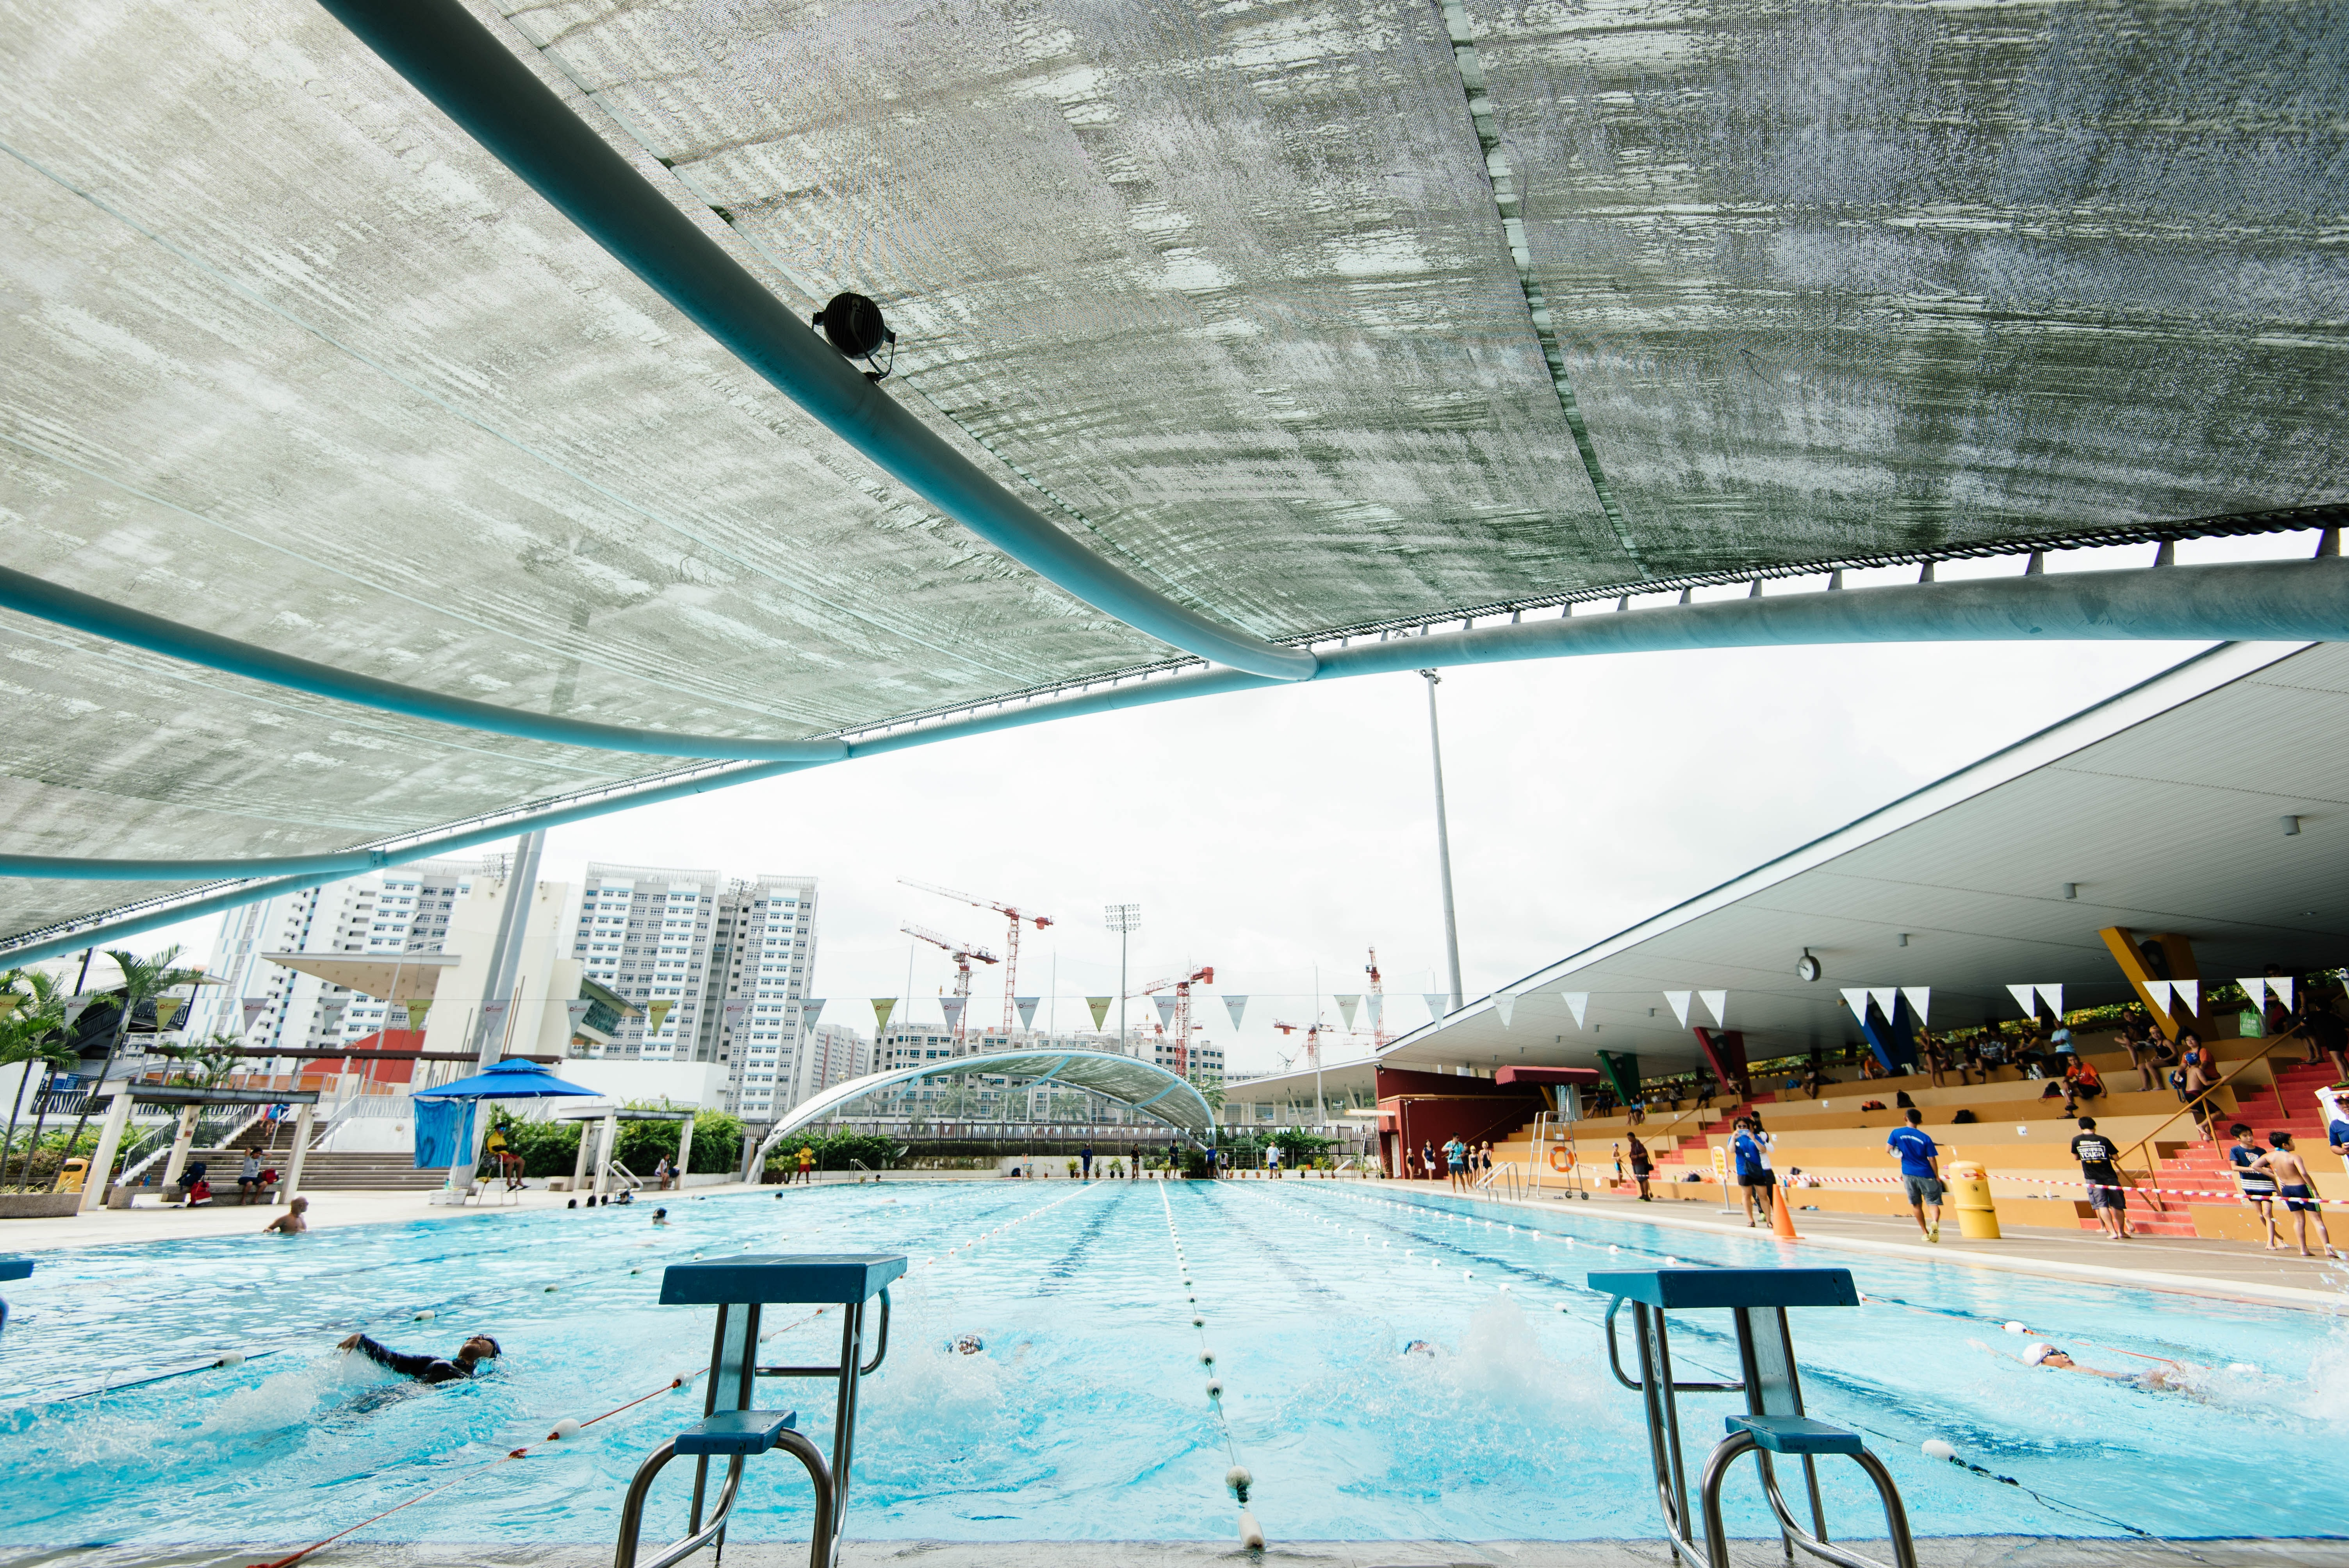 people gathering around in an olympic pool during day time